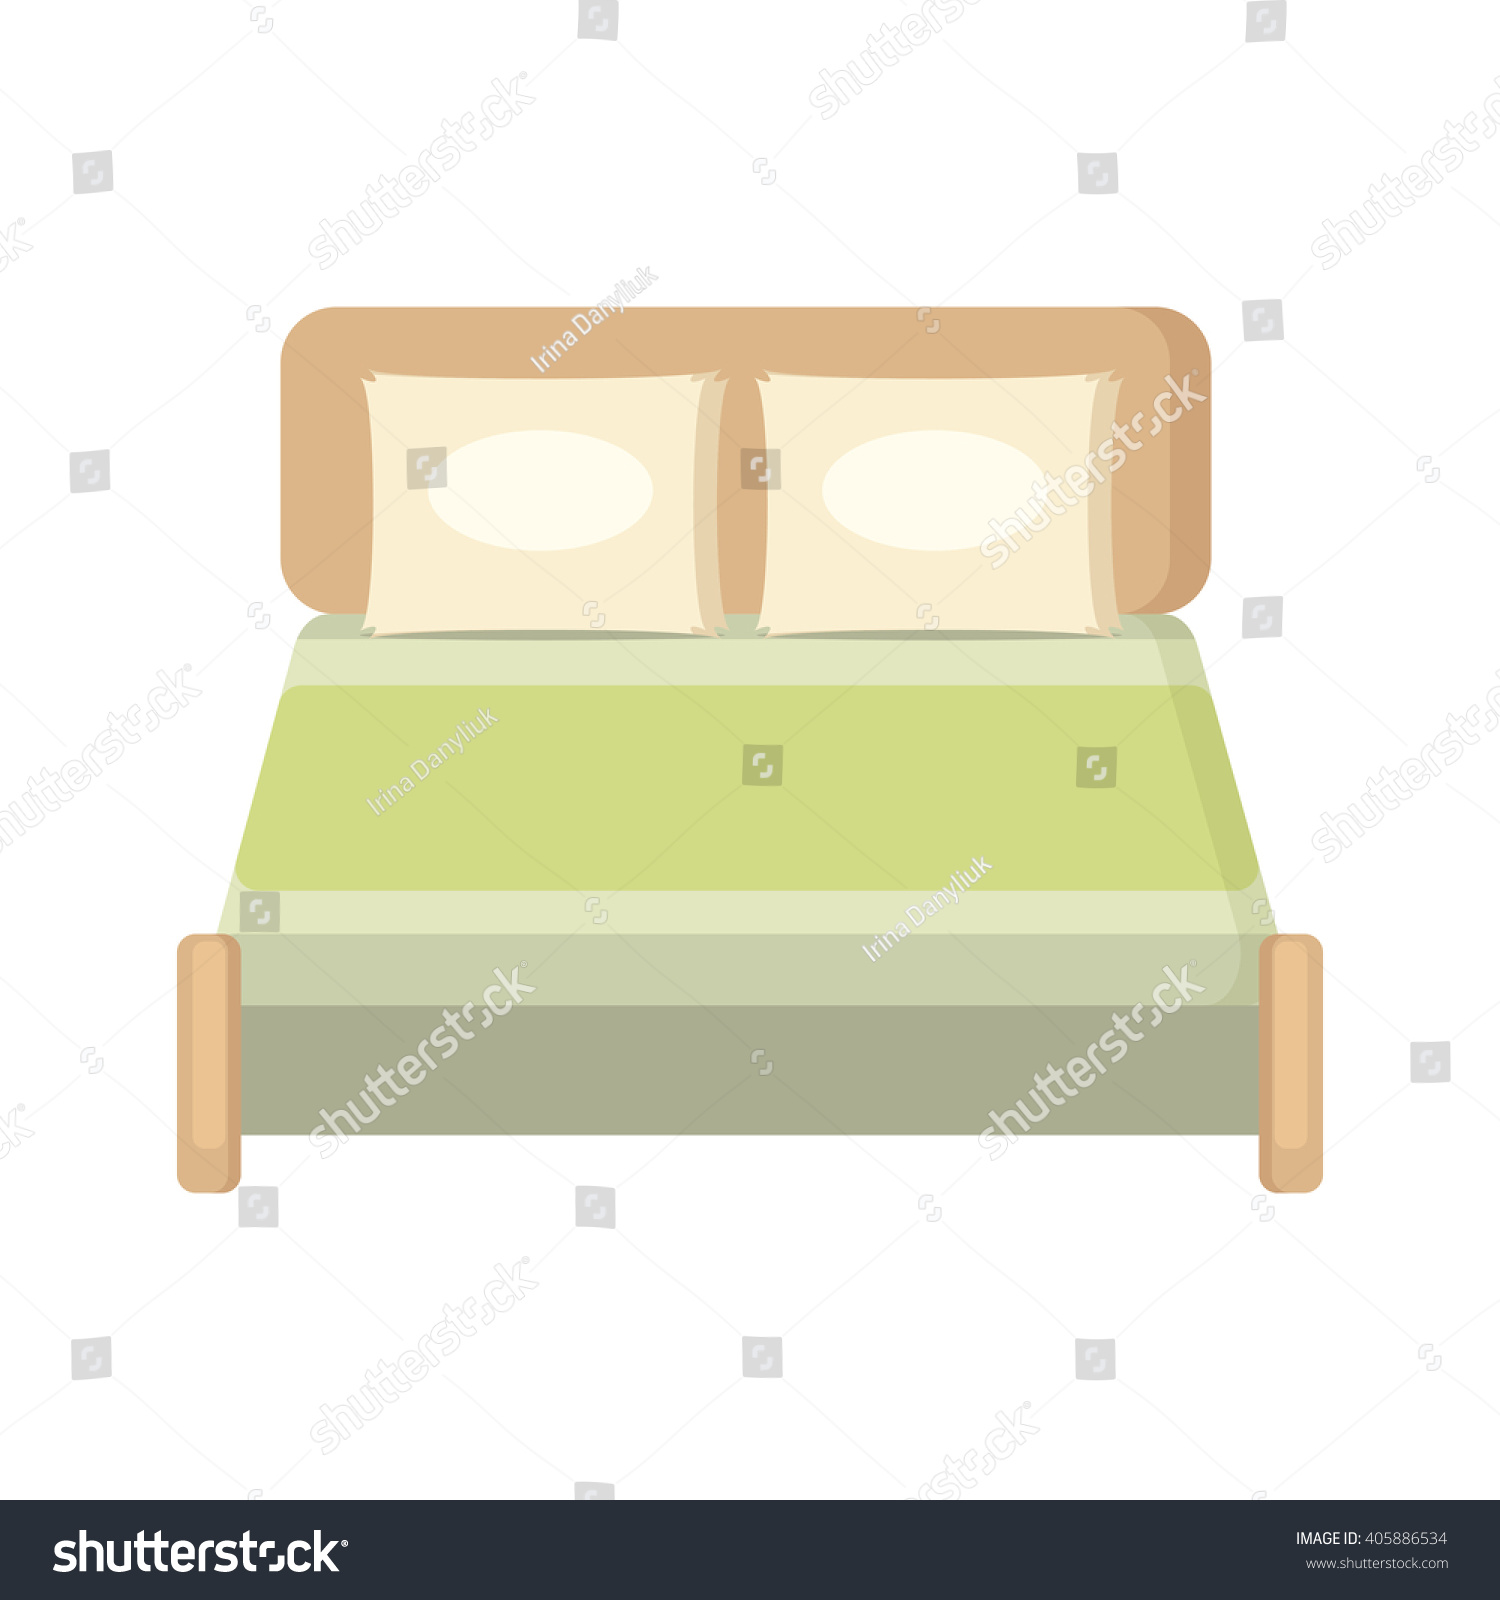 blanket and pillow clipart. bedding blankets clip art blanket and pillow clipart